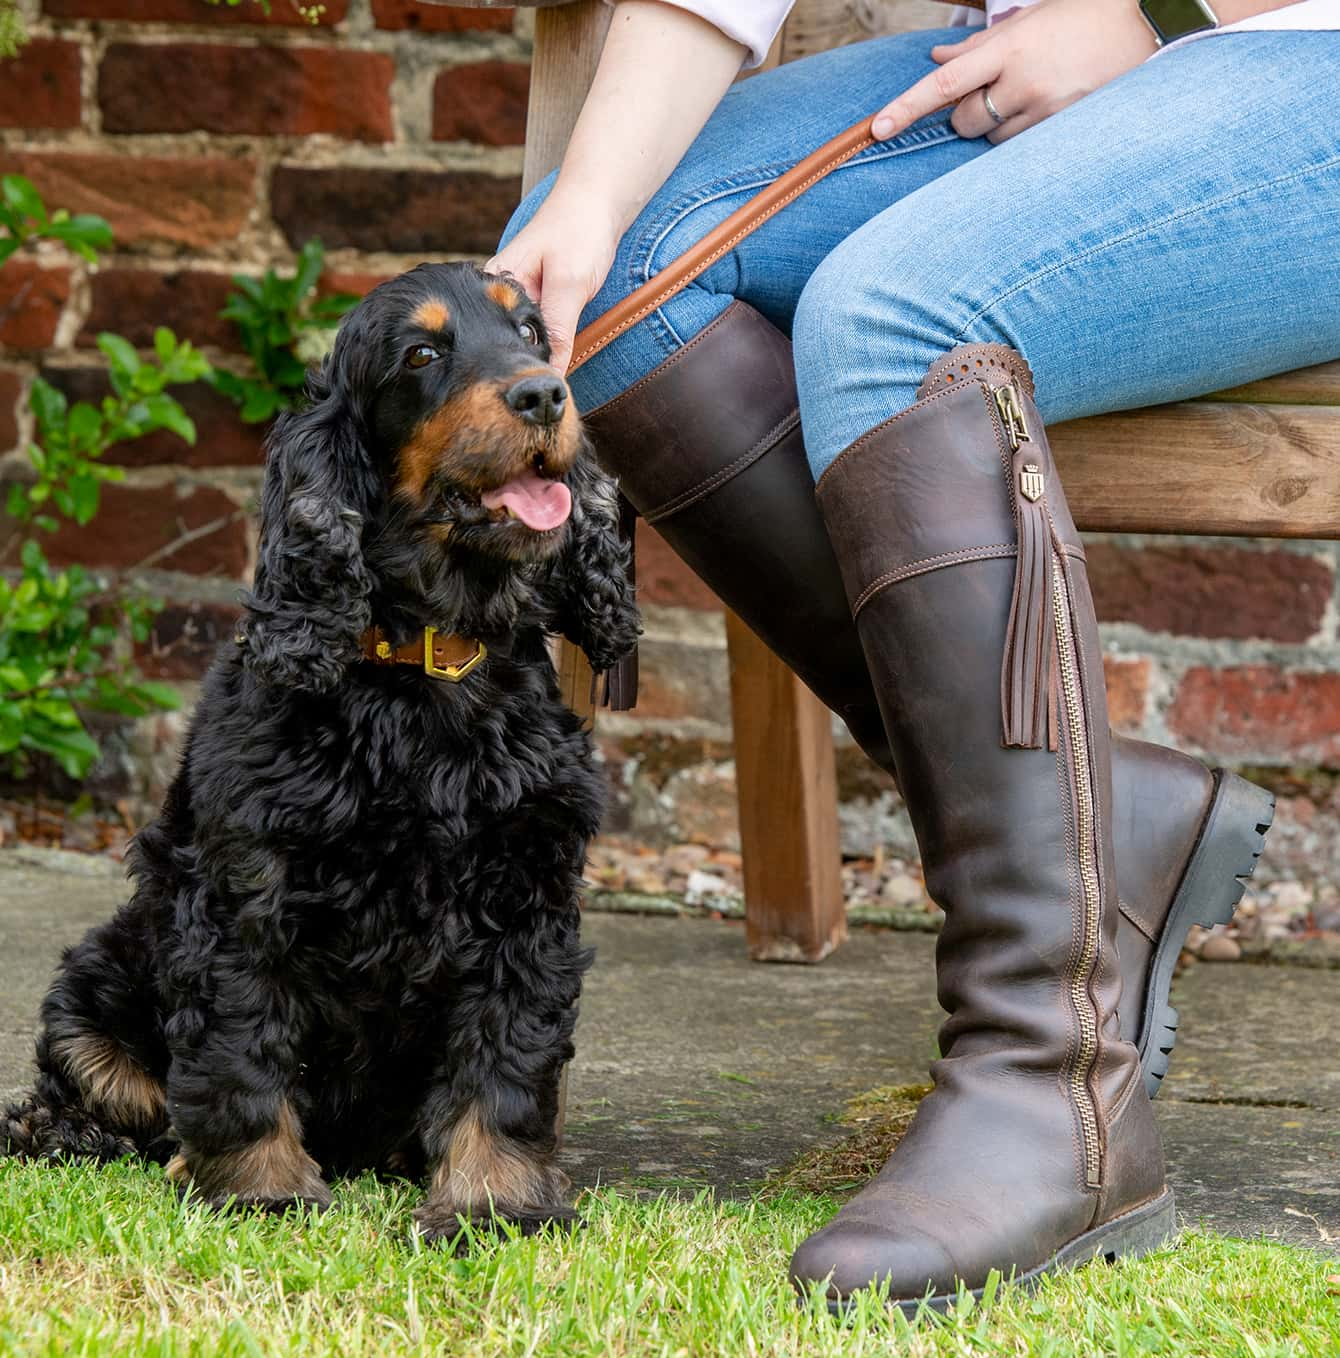 Woman wearing Fairfax & favour Imperial Explorer knee high boots with her spaniel wearing a Fairfax & Favor Fitzroy Collar.